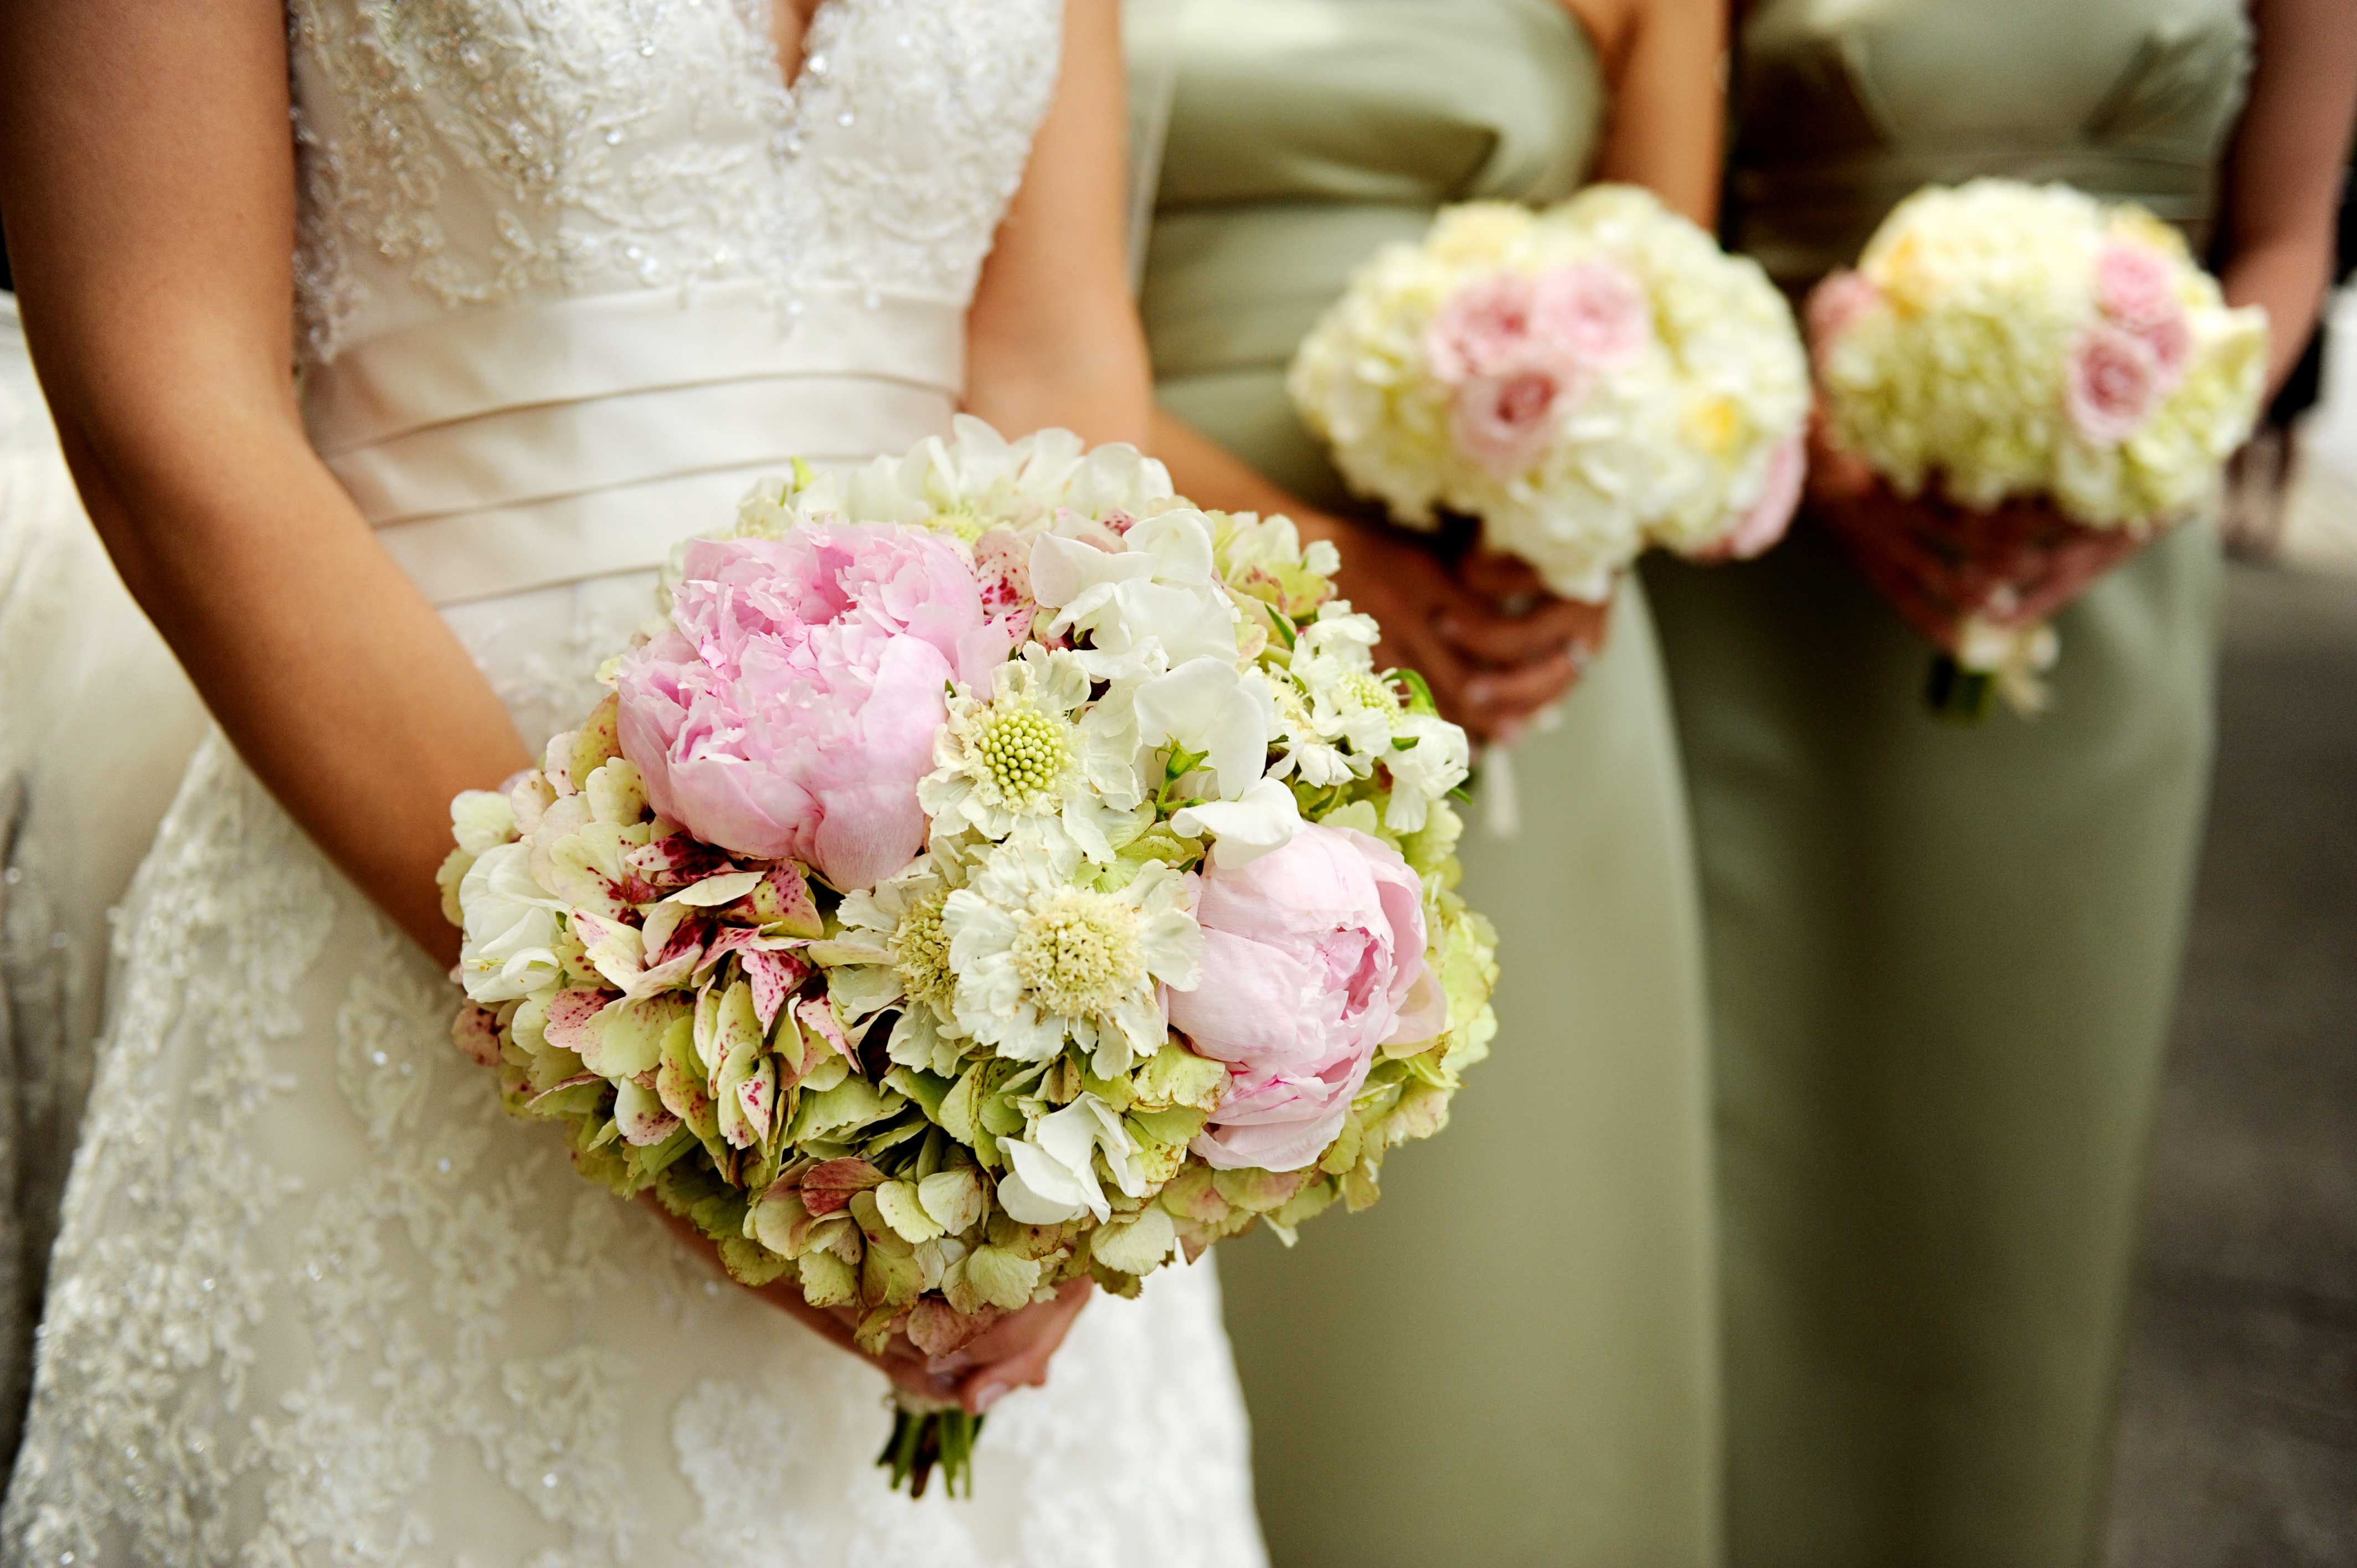 Wedding flower tips from the experts arabia weddings wedding flower tips from the experts junglespirit Images